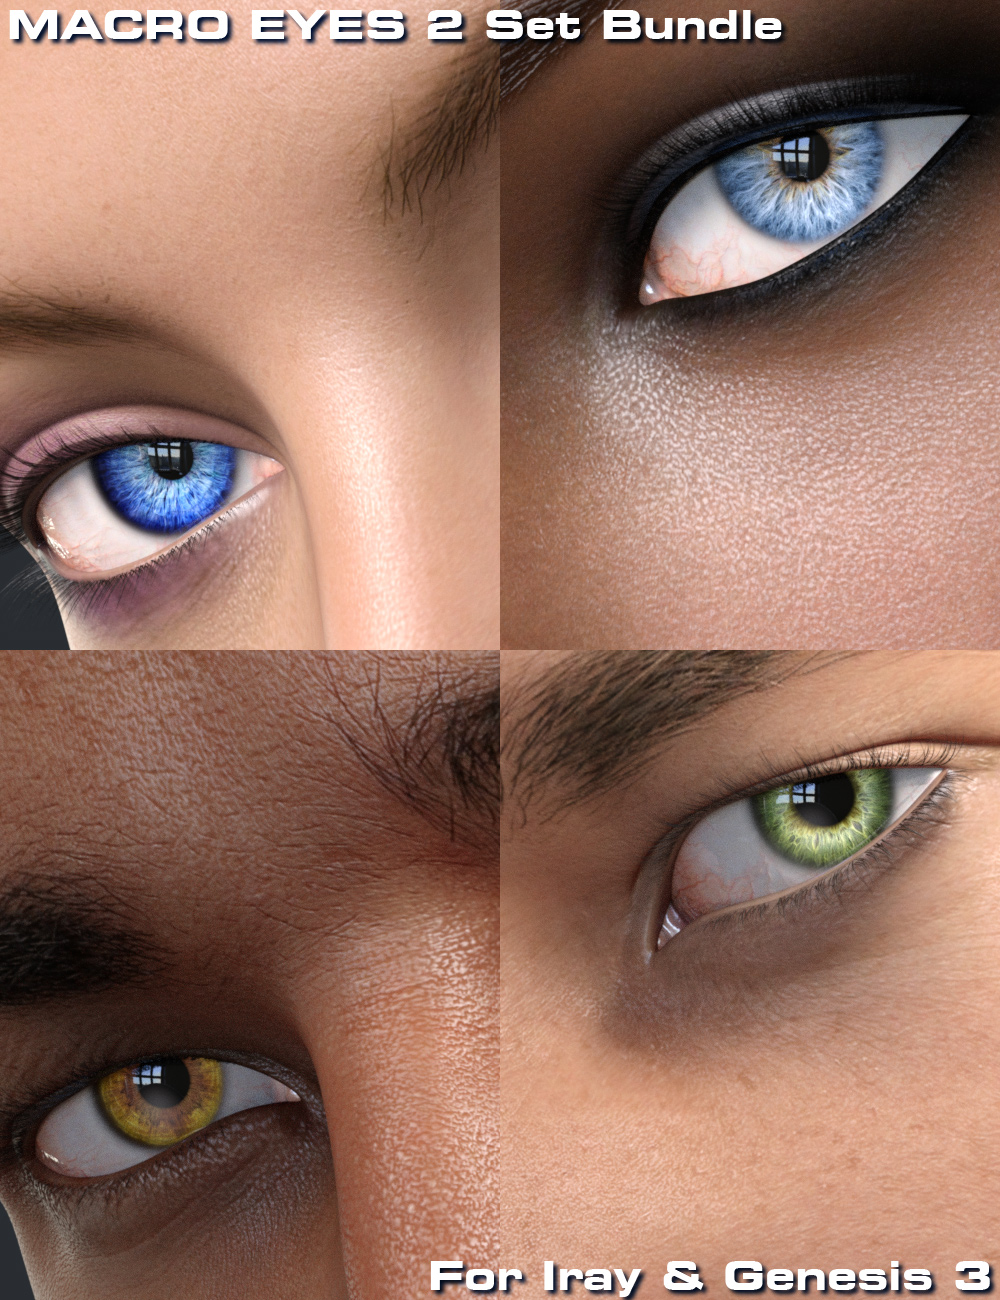 Macro Eyes for Iray Bundle by: Parris, 3D Models by Daz 3D